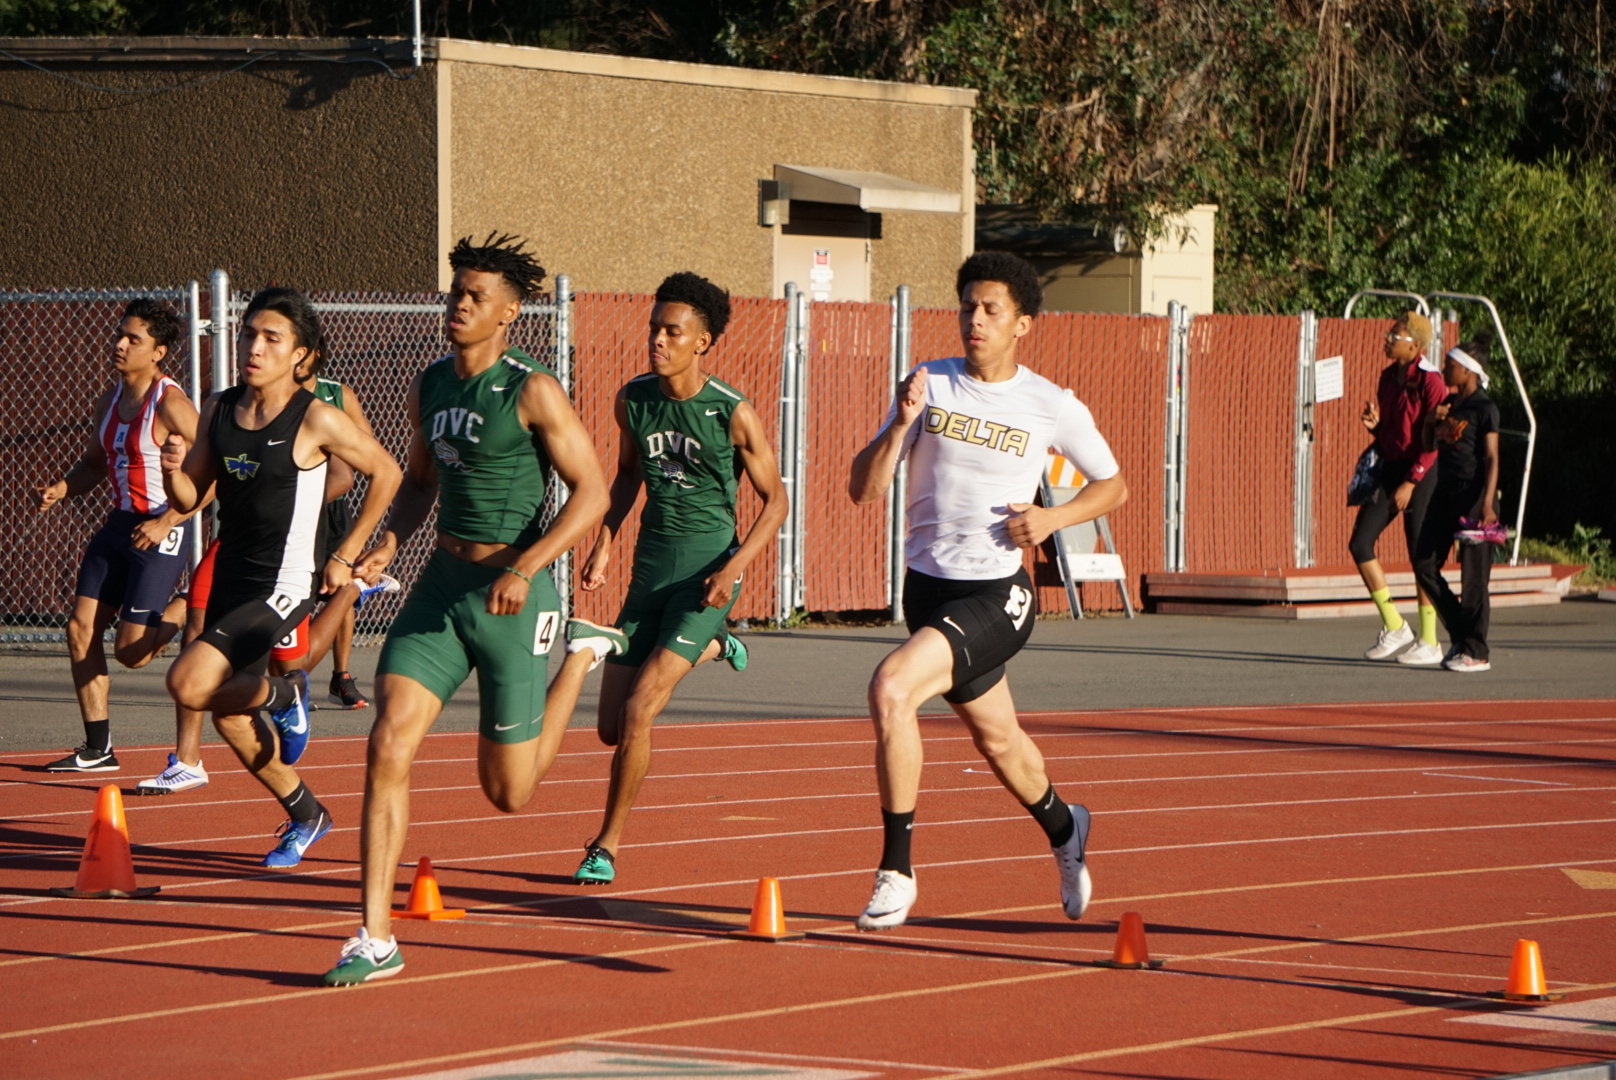 Pierce named Men's Athlete of the Meet; Men finish 4th, Women finish 7th at Norcal Meet